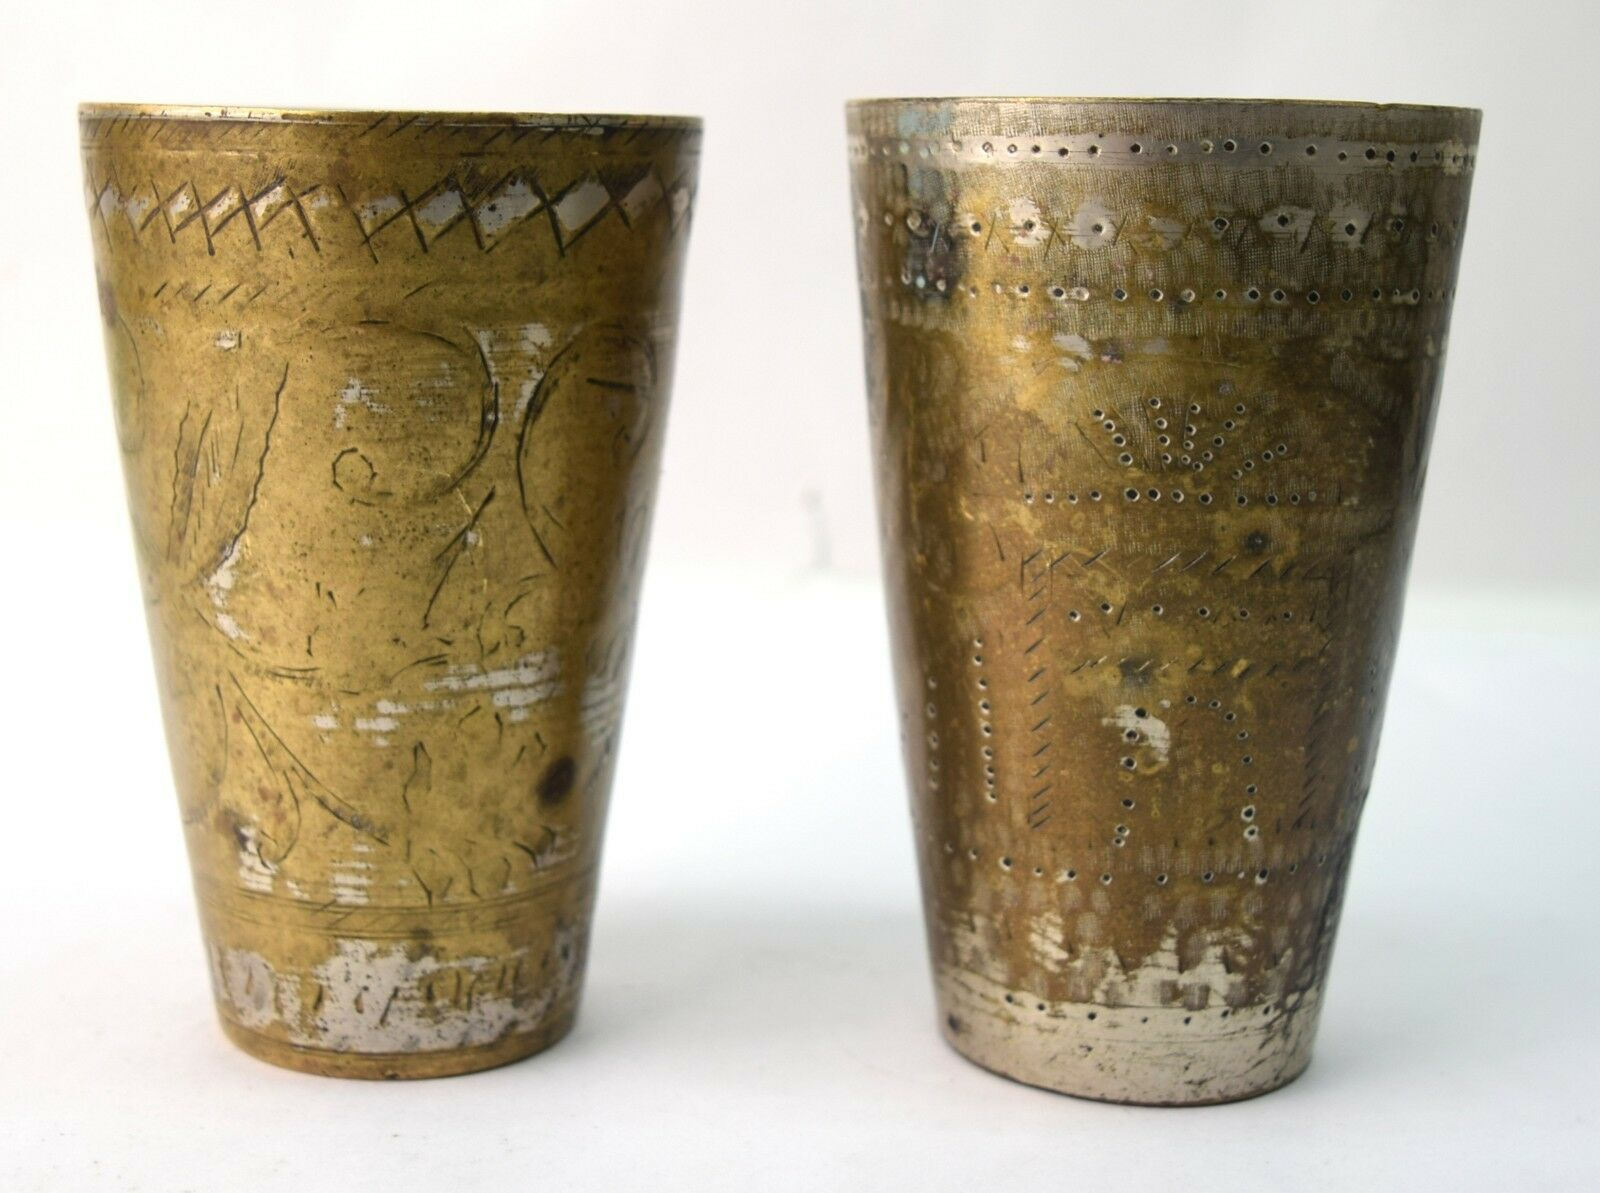 Vintage Brass Handcrafted Indian Lassi & Milk Glass Nice à collectionner. G66-448 US